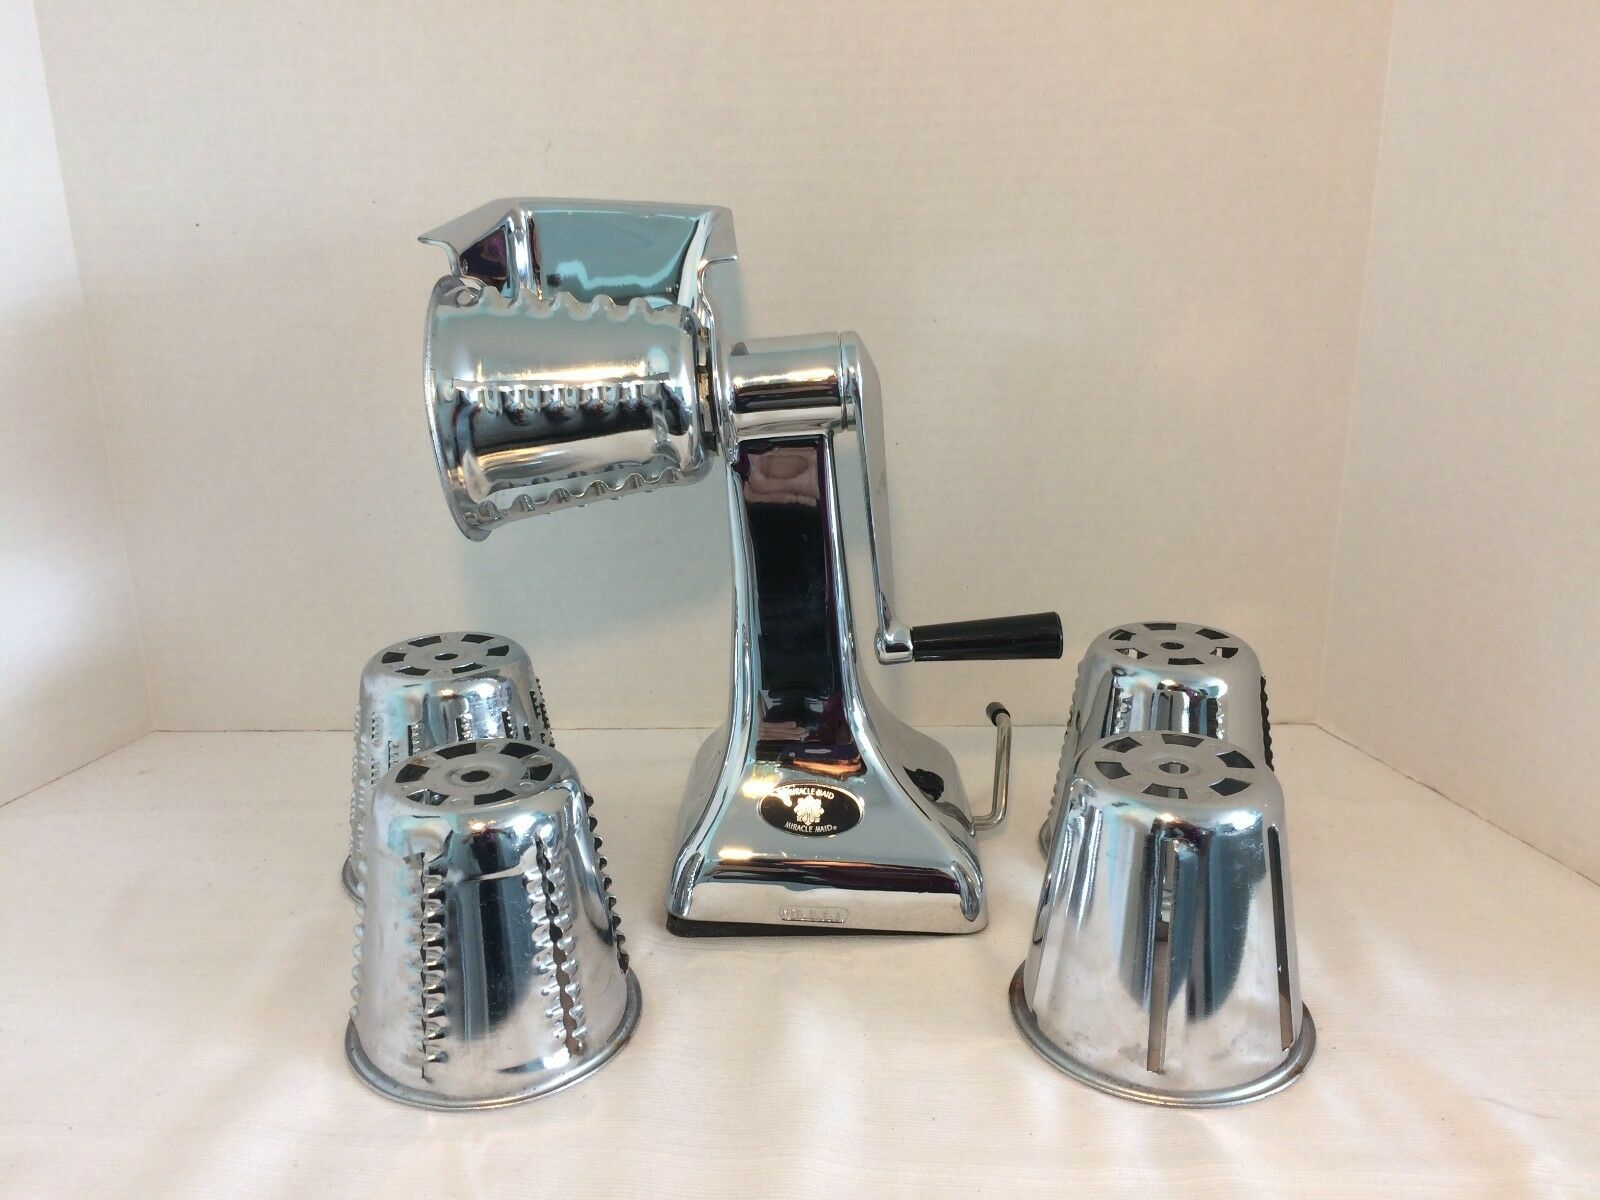 Vintage Miracle Maid Food Processor Vegetable Slicer Chopper + 5 CONES West Bend